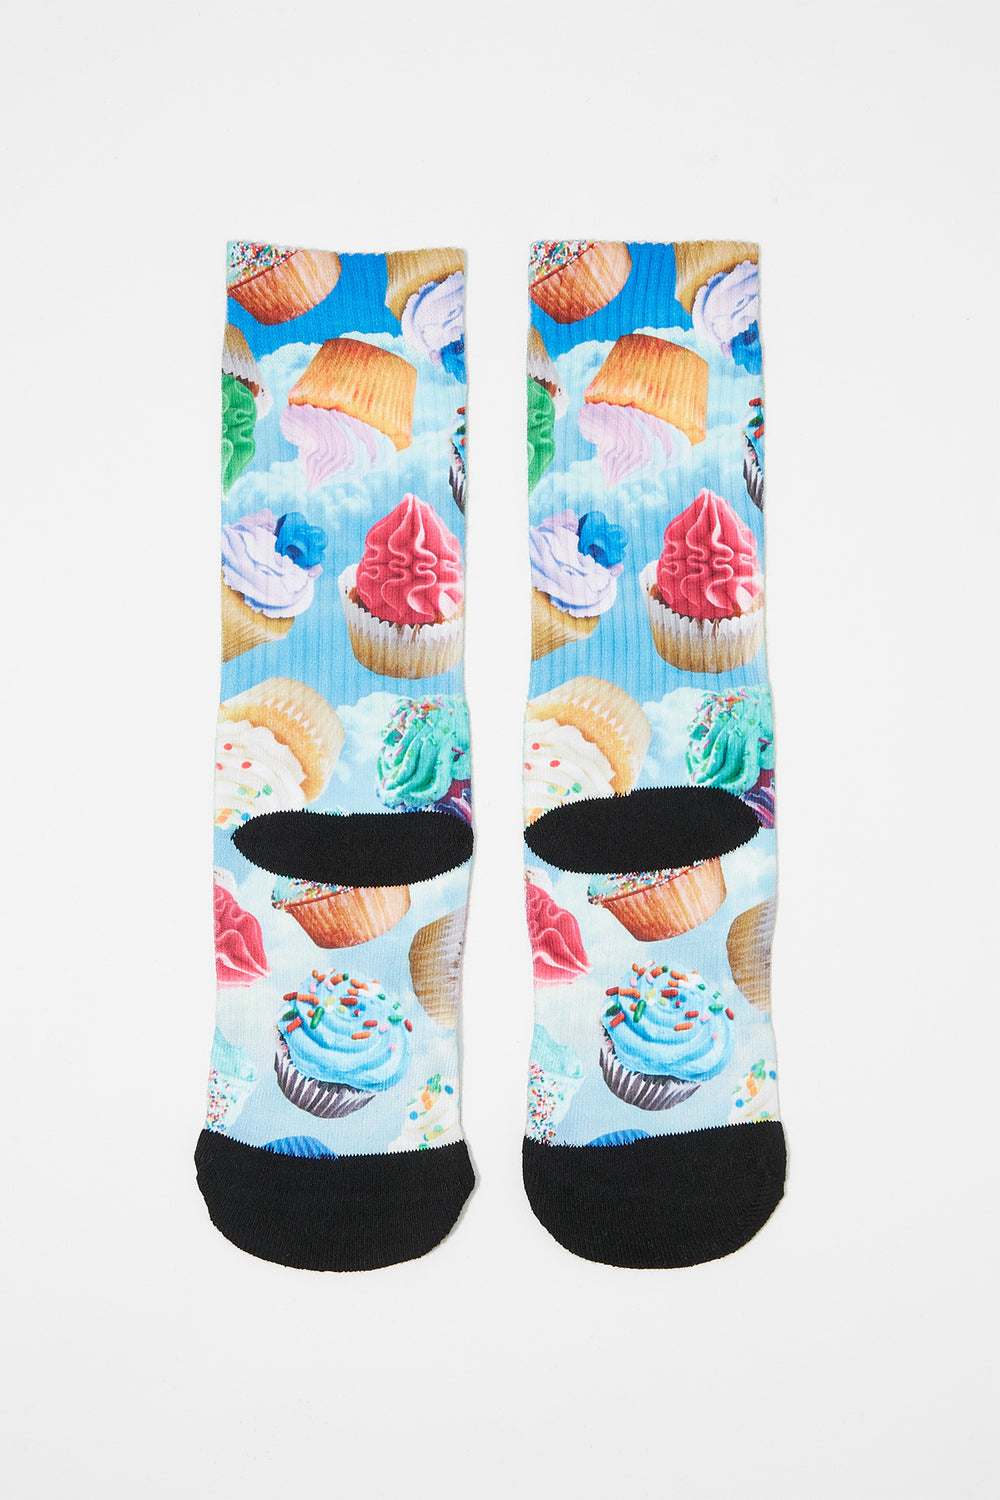 Zoo York Boys Rainbow Crew Socks Baby Blue